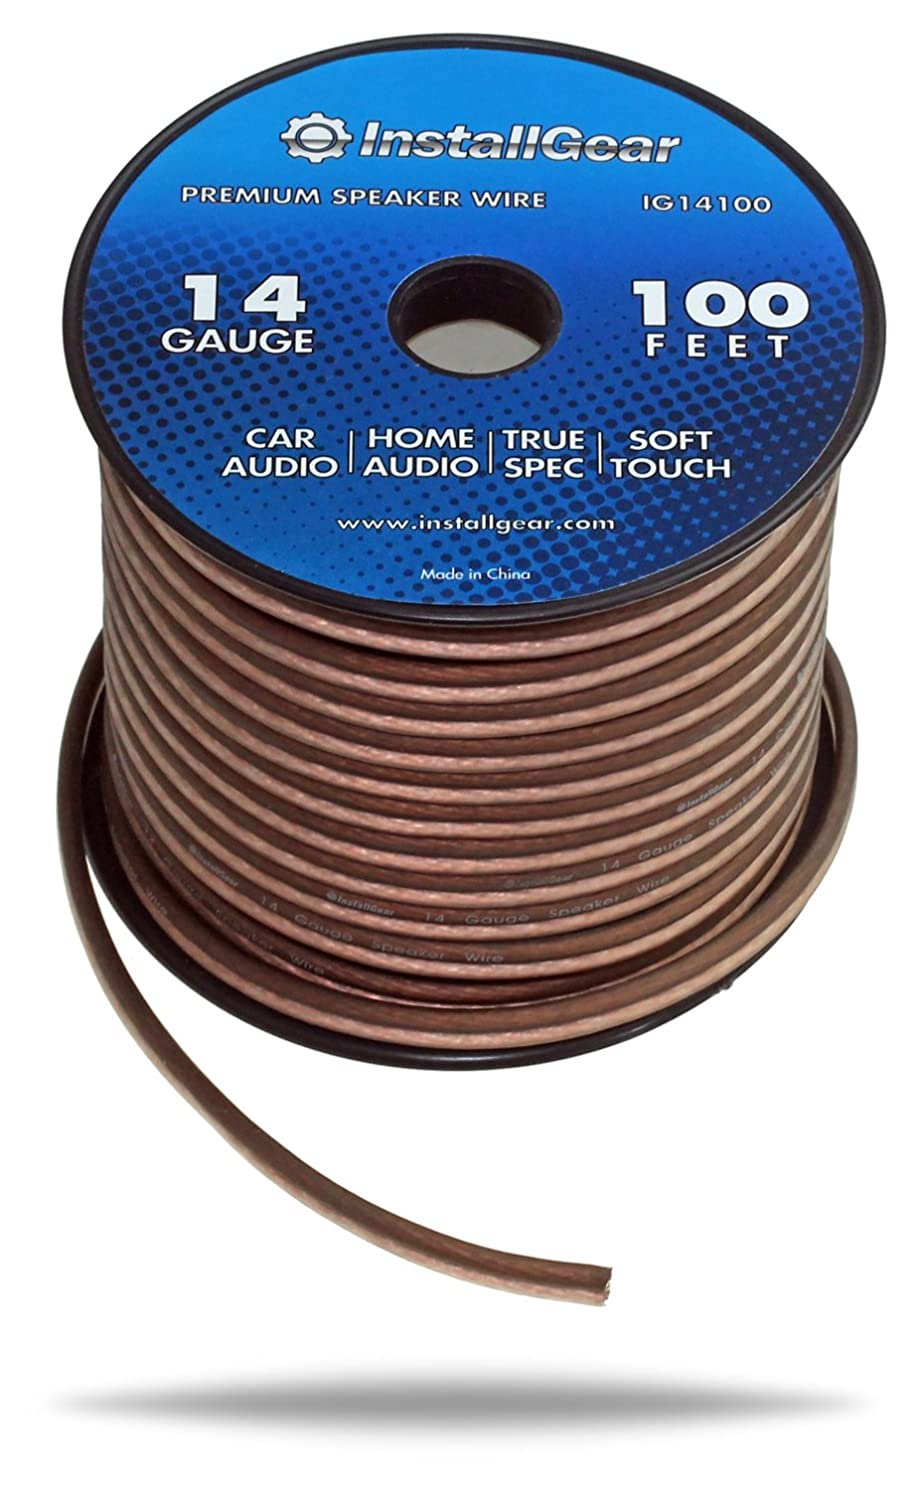 Top 20 Best Speaker Wire Cables List And Reviews On Flipboard By Avadew Home Wiring Installgear 14 Gauge Awg 100ft True Spec Soft Touch Cable